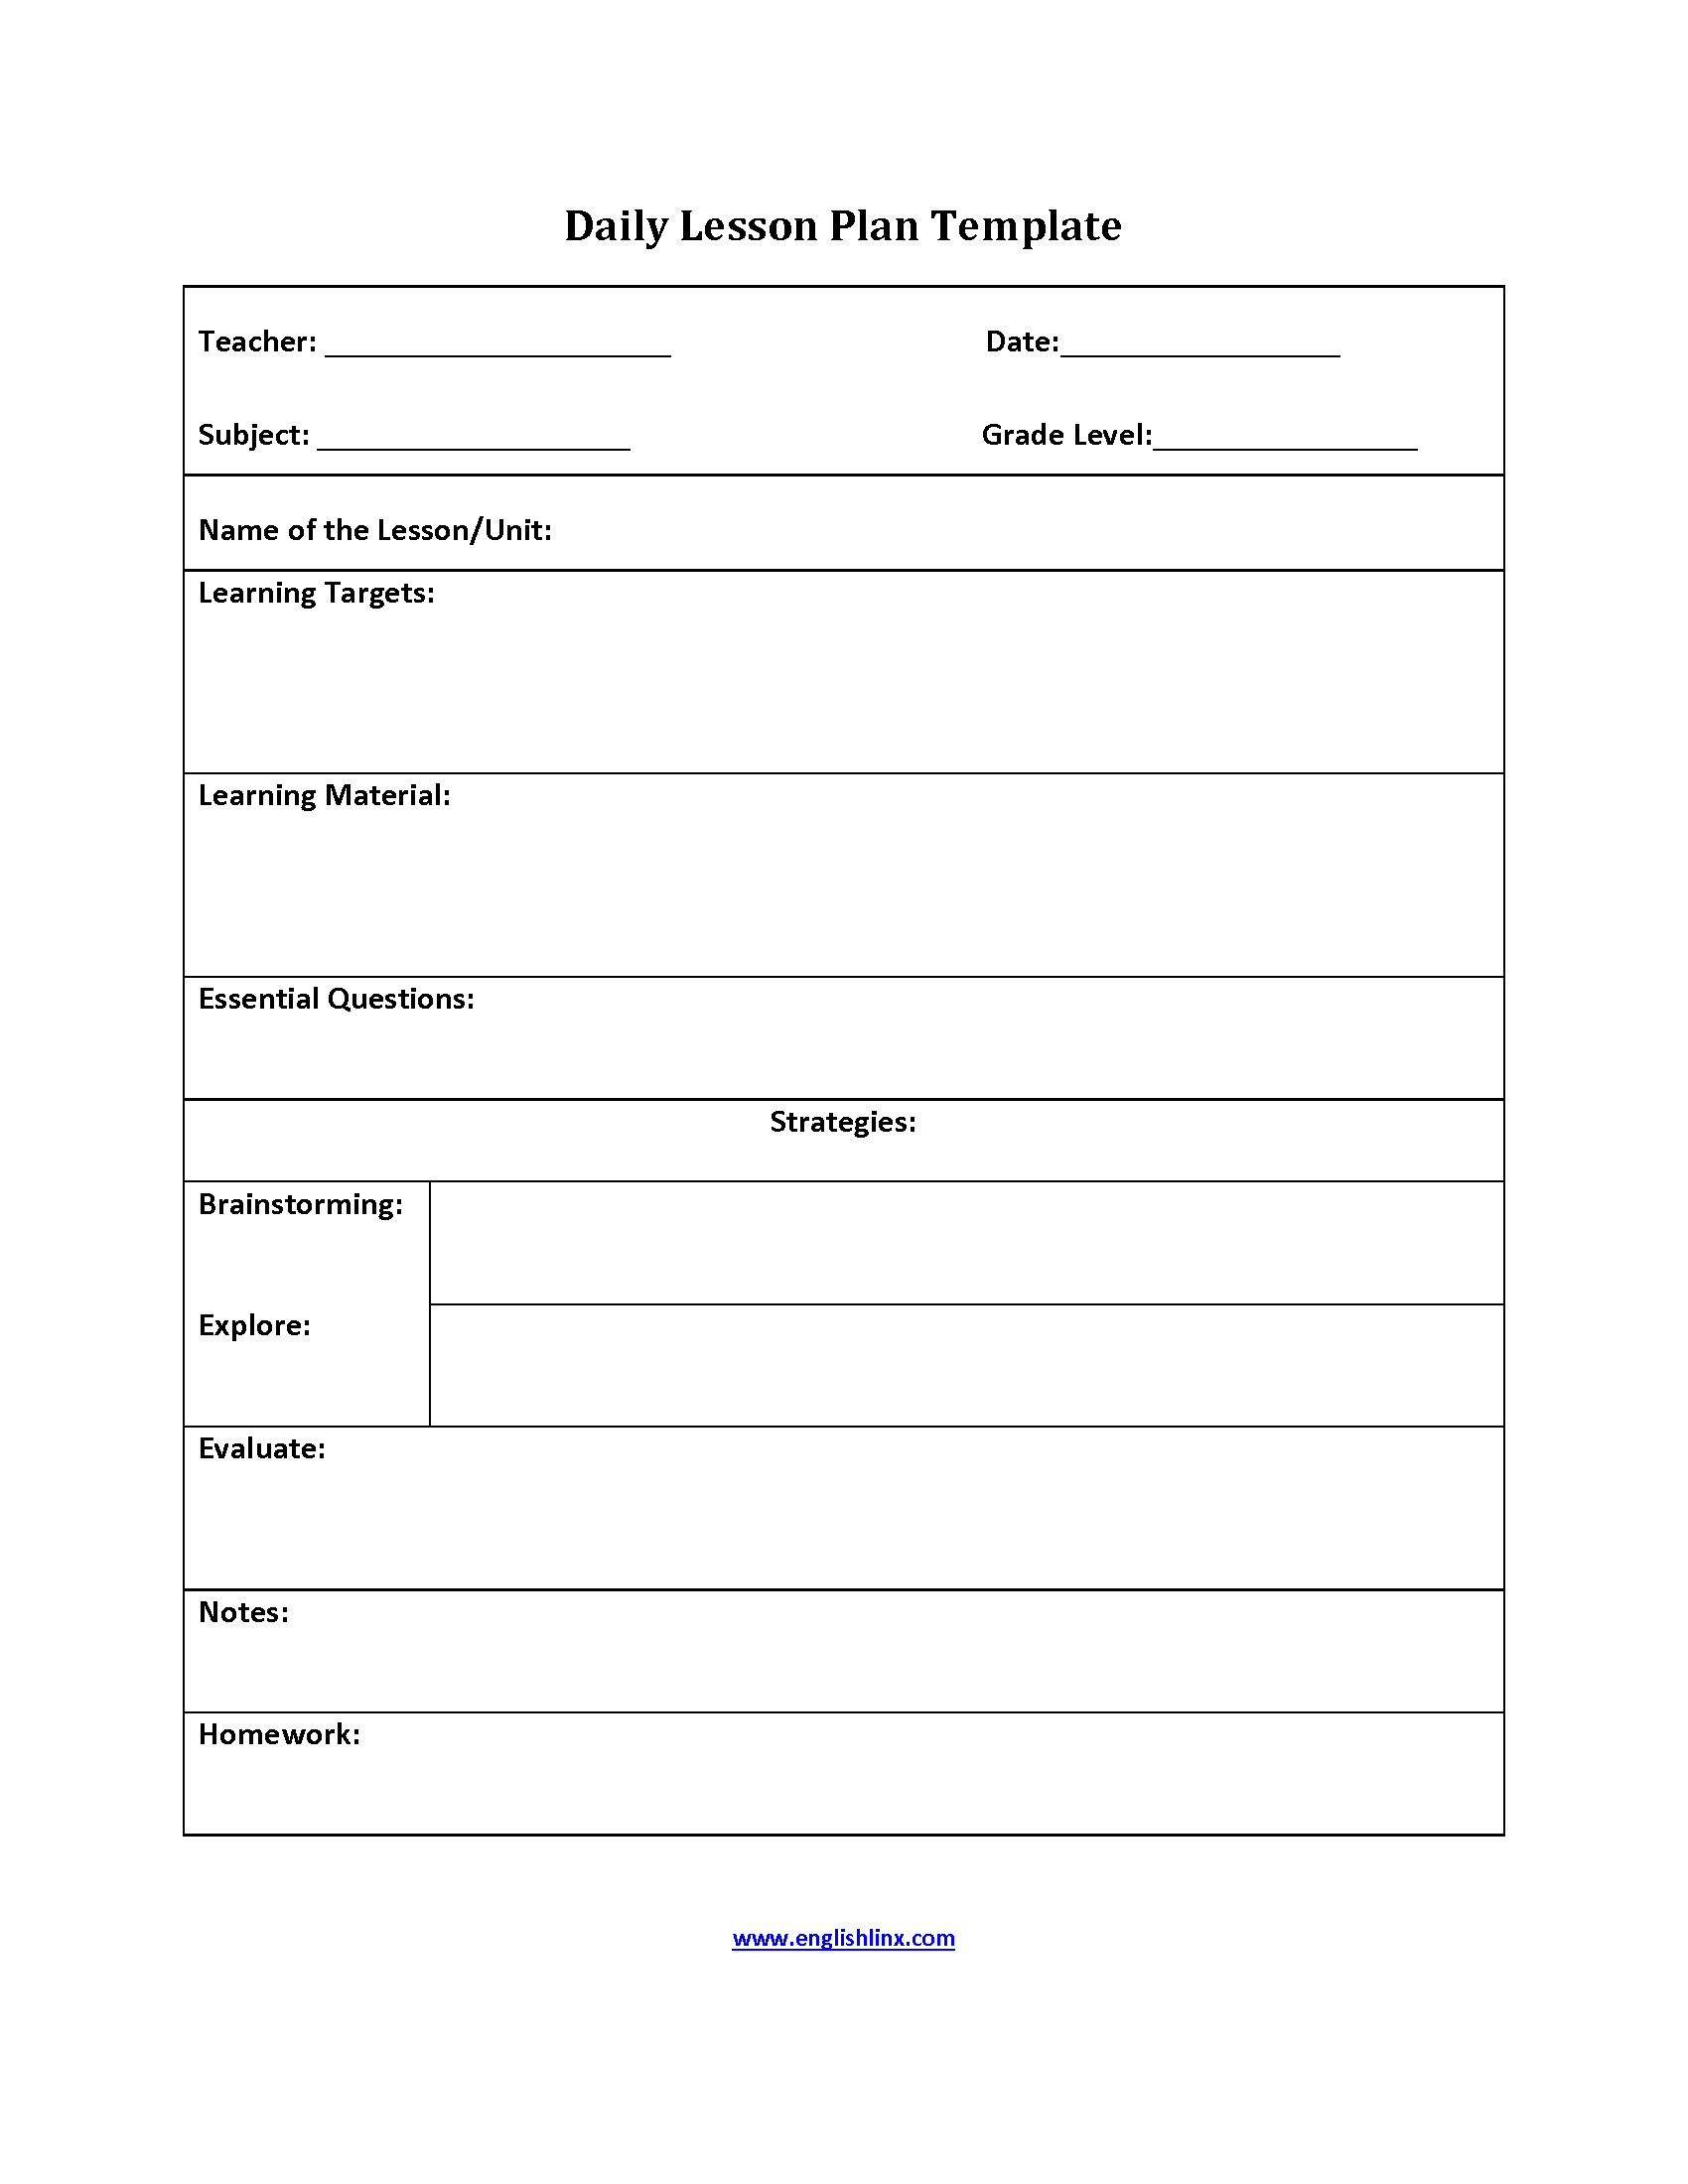 Free Downloadable Lesson Plan Format Templates Printable Template - Free Printable Daily Lesson Plan Template